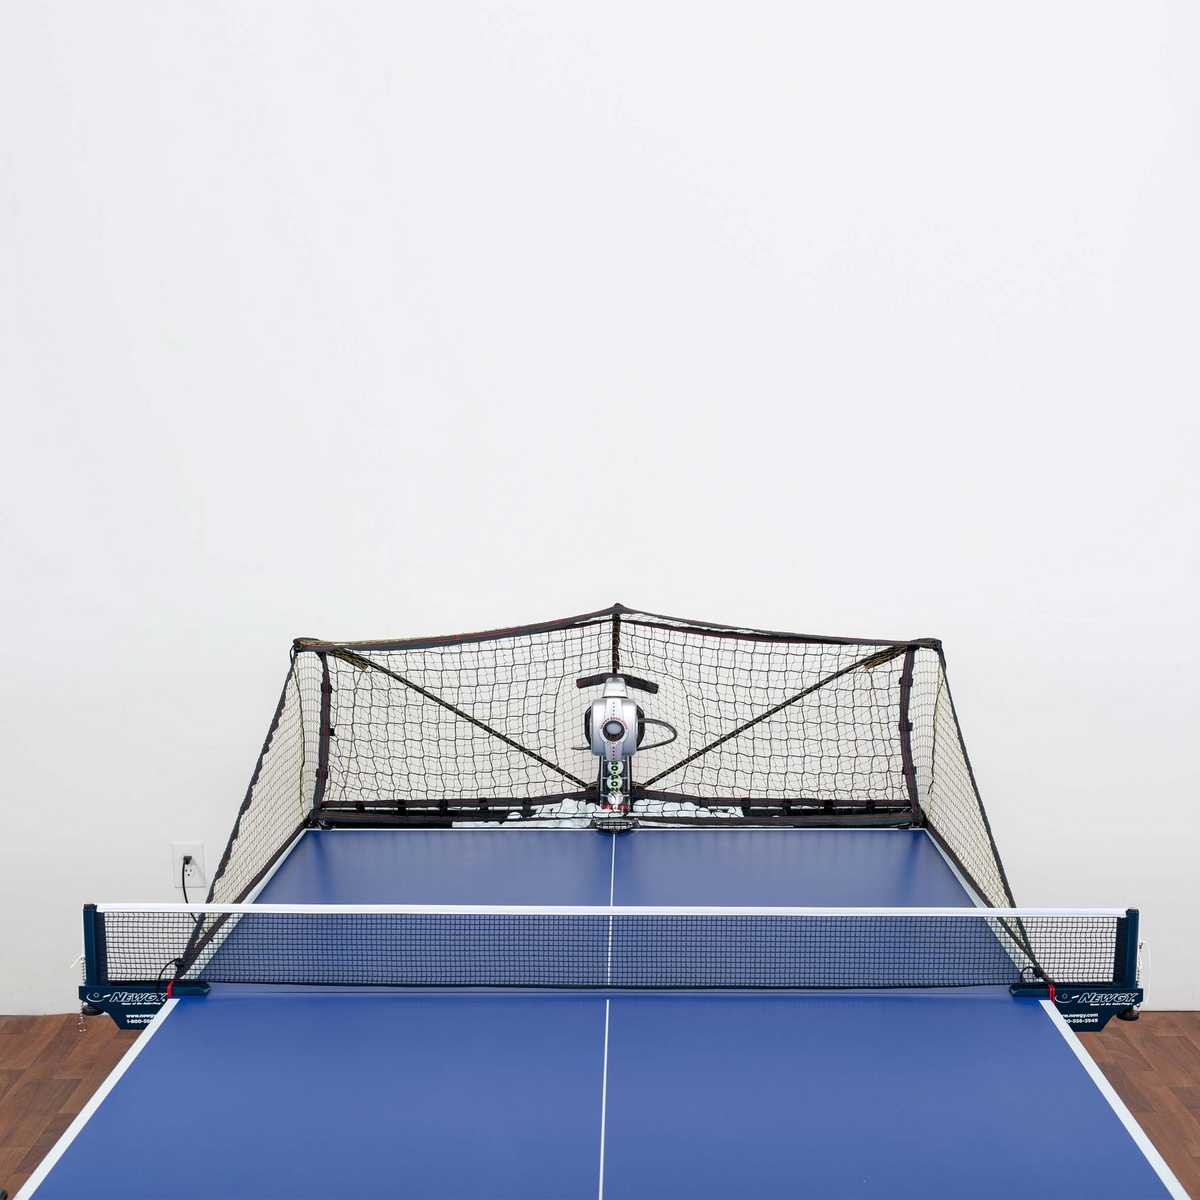 Wack Sport Tennis De Table Donic Tennis De Table Robopong 3050xl Wack Sport Les Pros Du